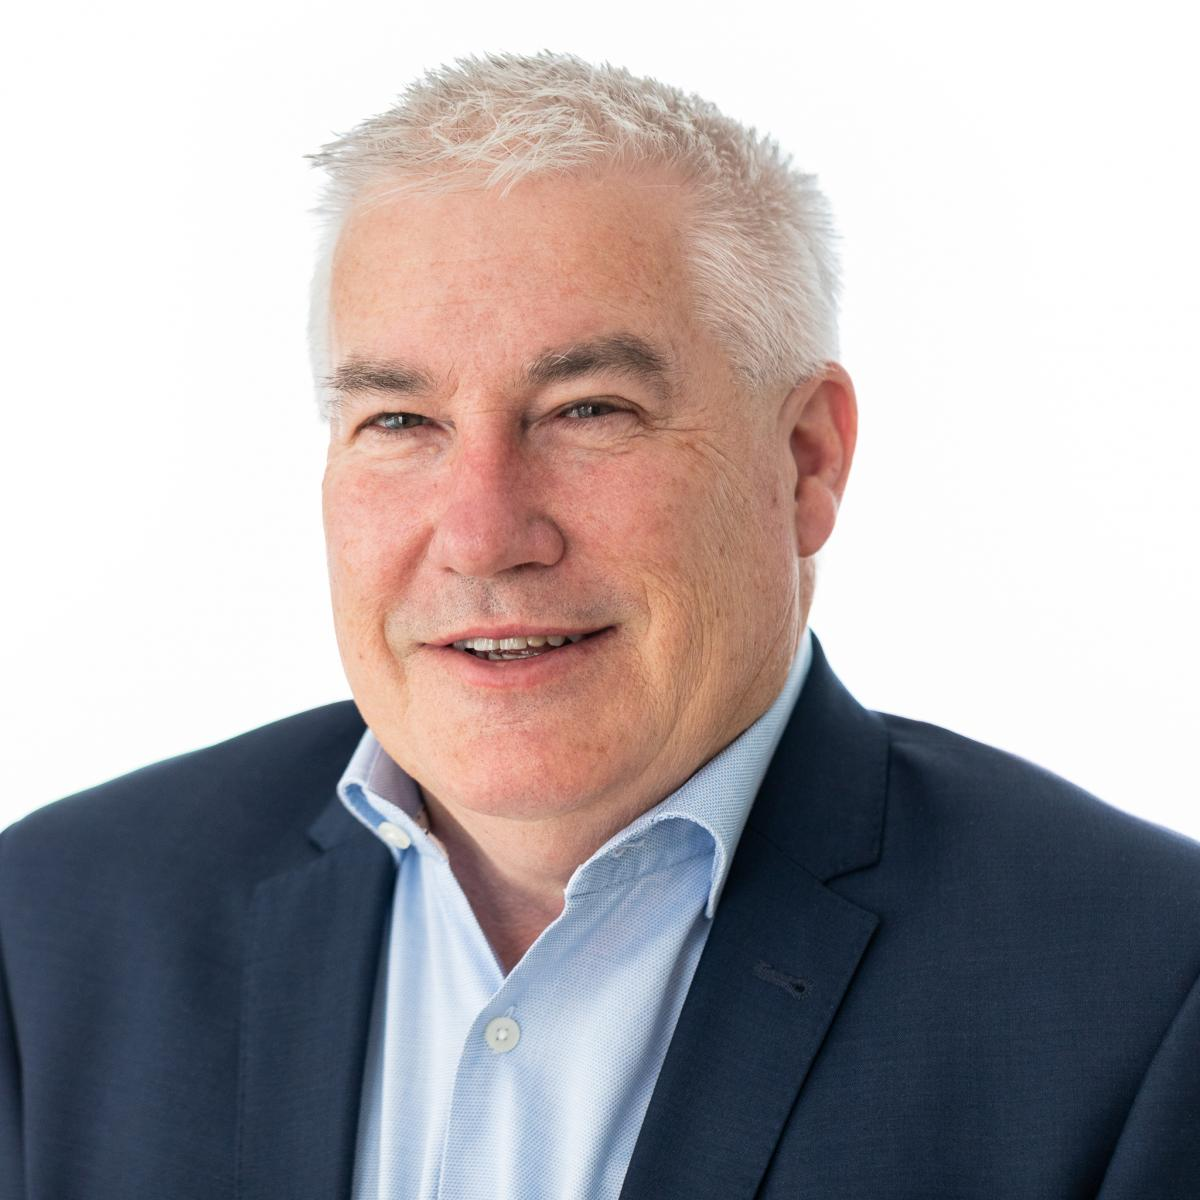 National Council CEO P. Toby oConnor